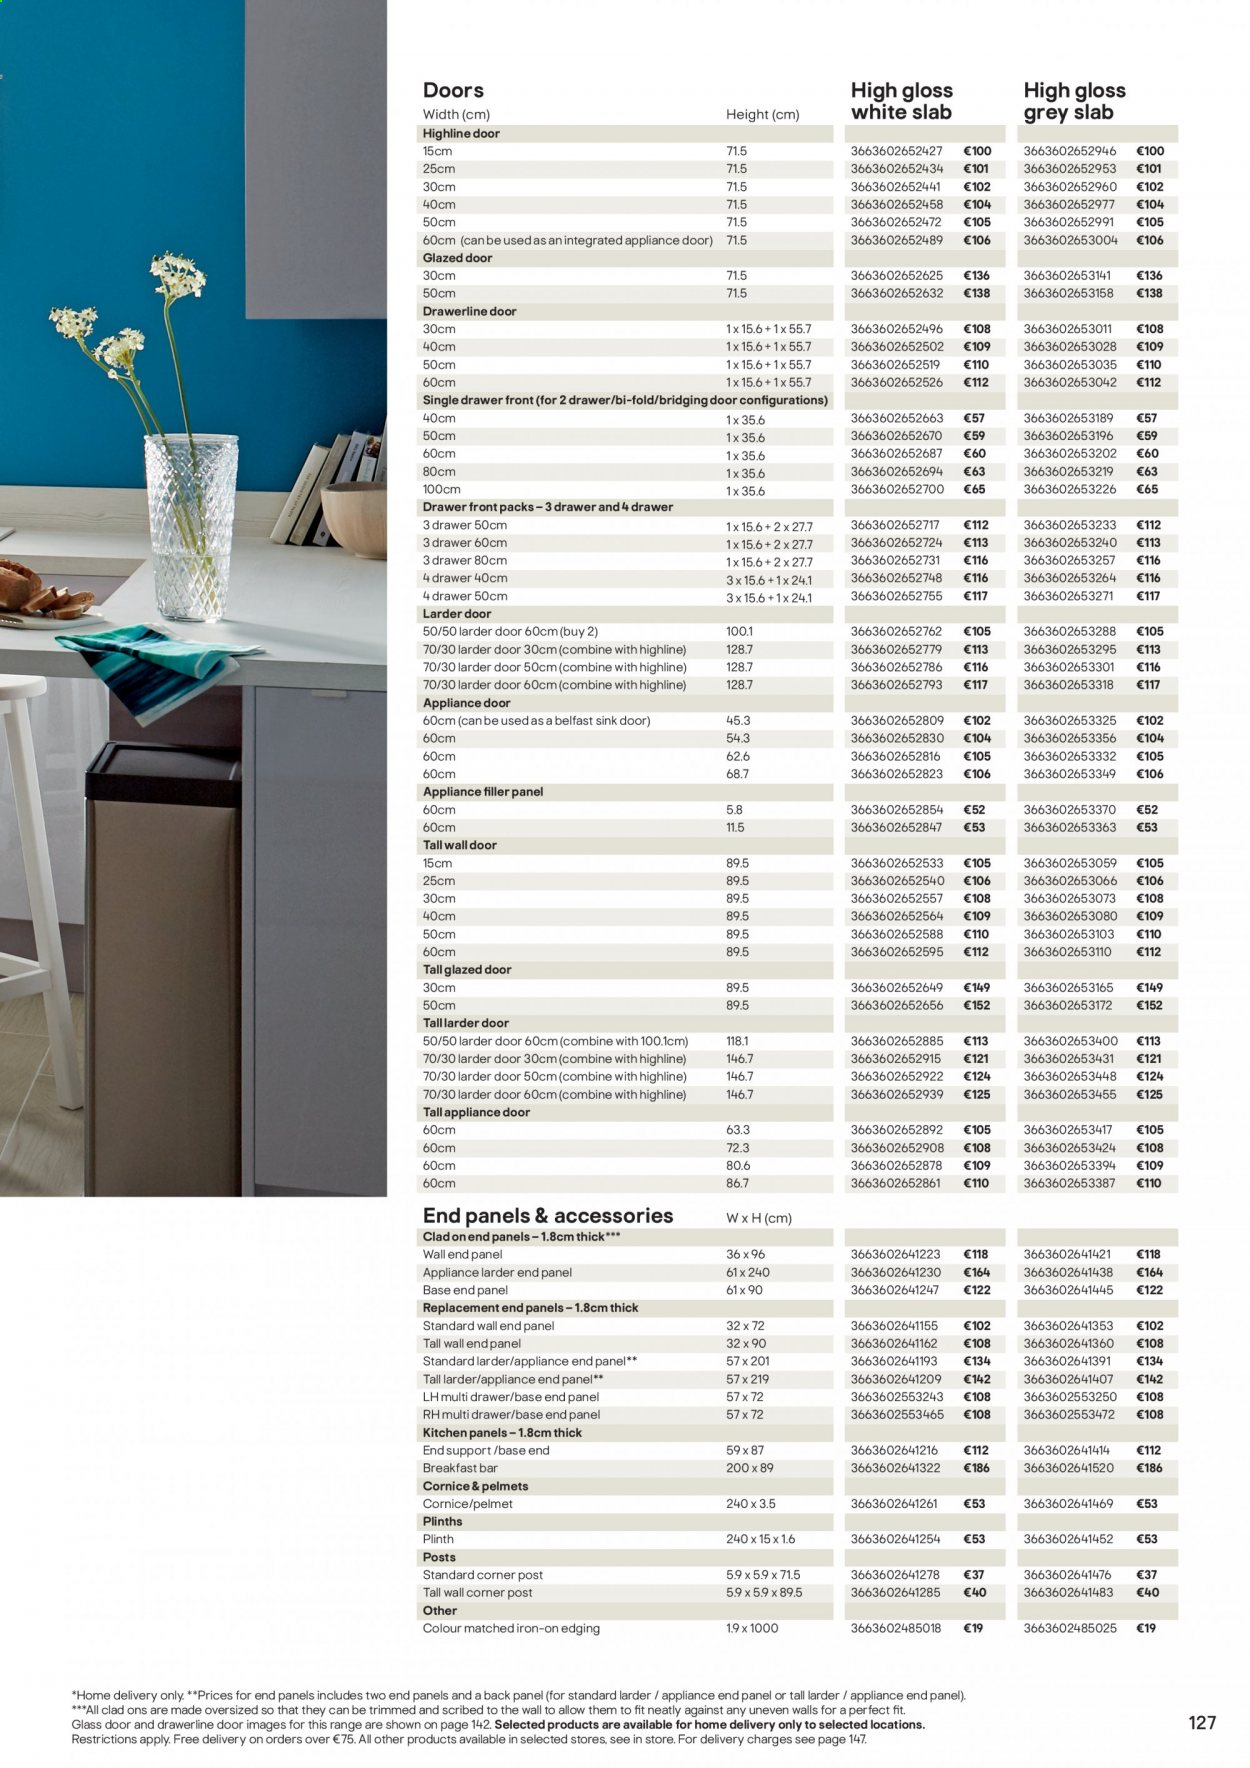 B&Q offer  - Sales products - door, drawer, glass, sink, iron, Kitchen, bar. Page 127.